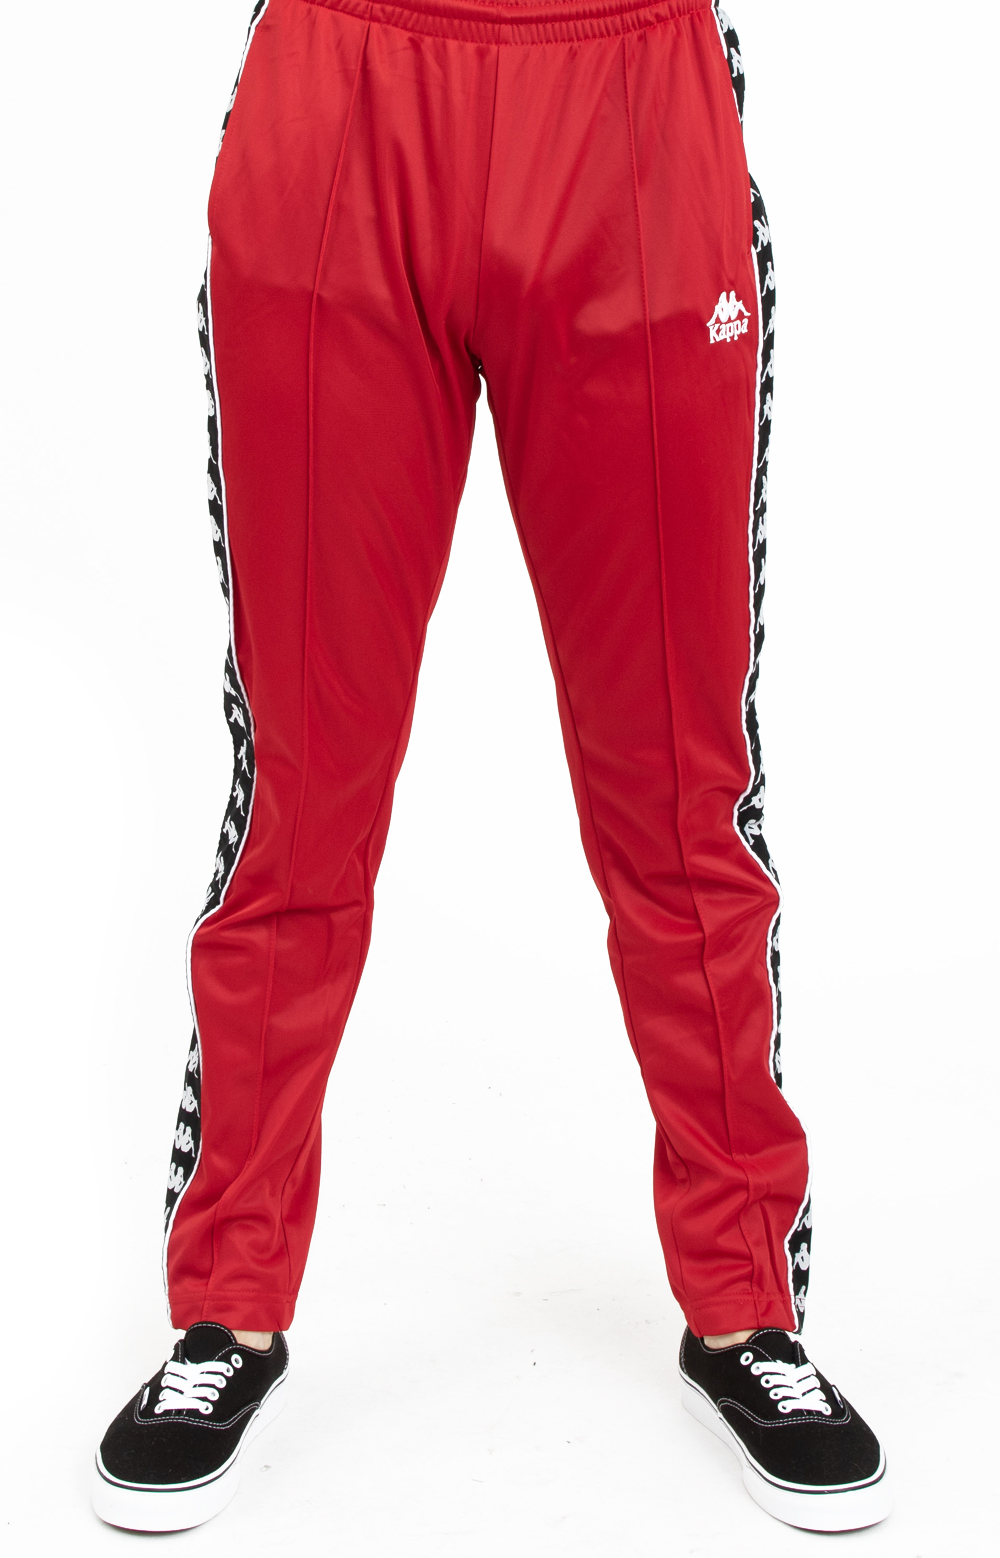 0d4f88c74ce Authentic Fairfax Slim Track Pants - Red Dk/Black/White. Thumbnail 1  Thumbnail 1 Thumbnail 1